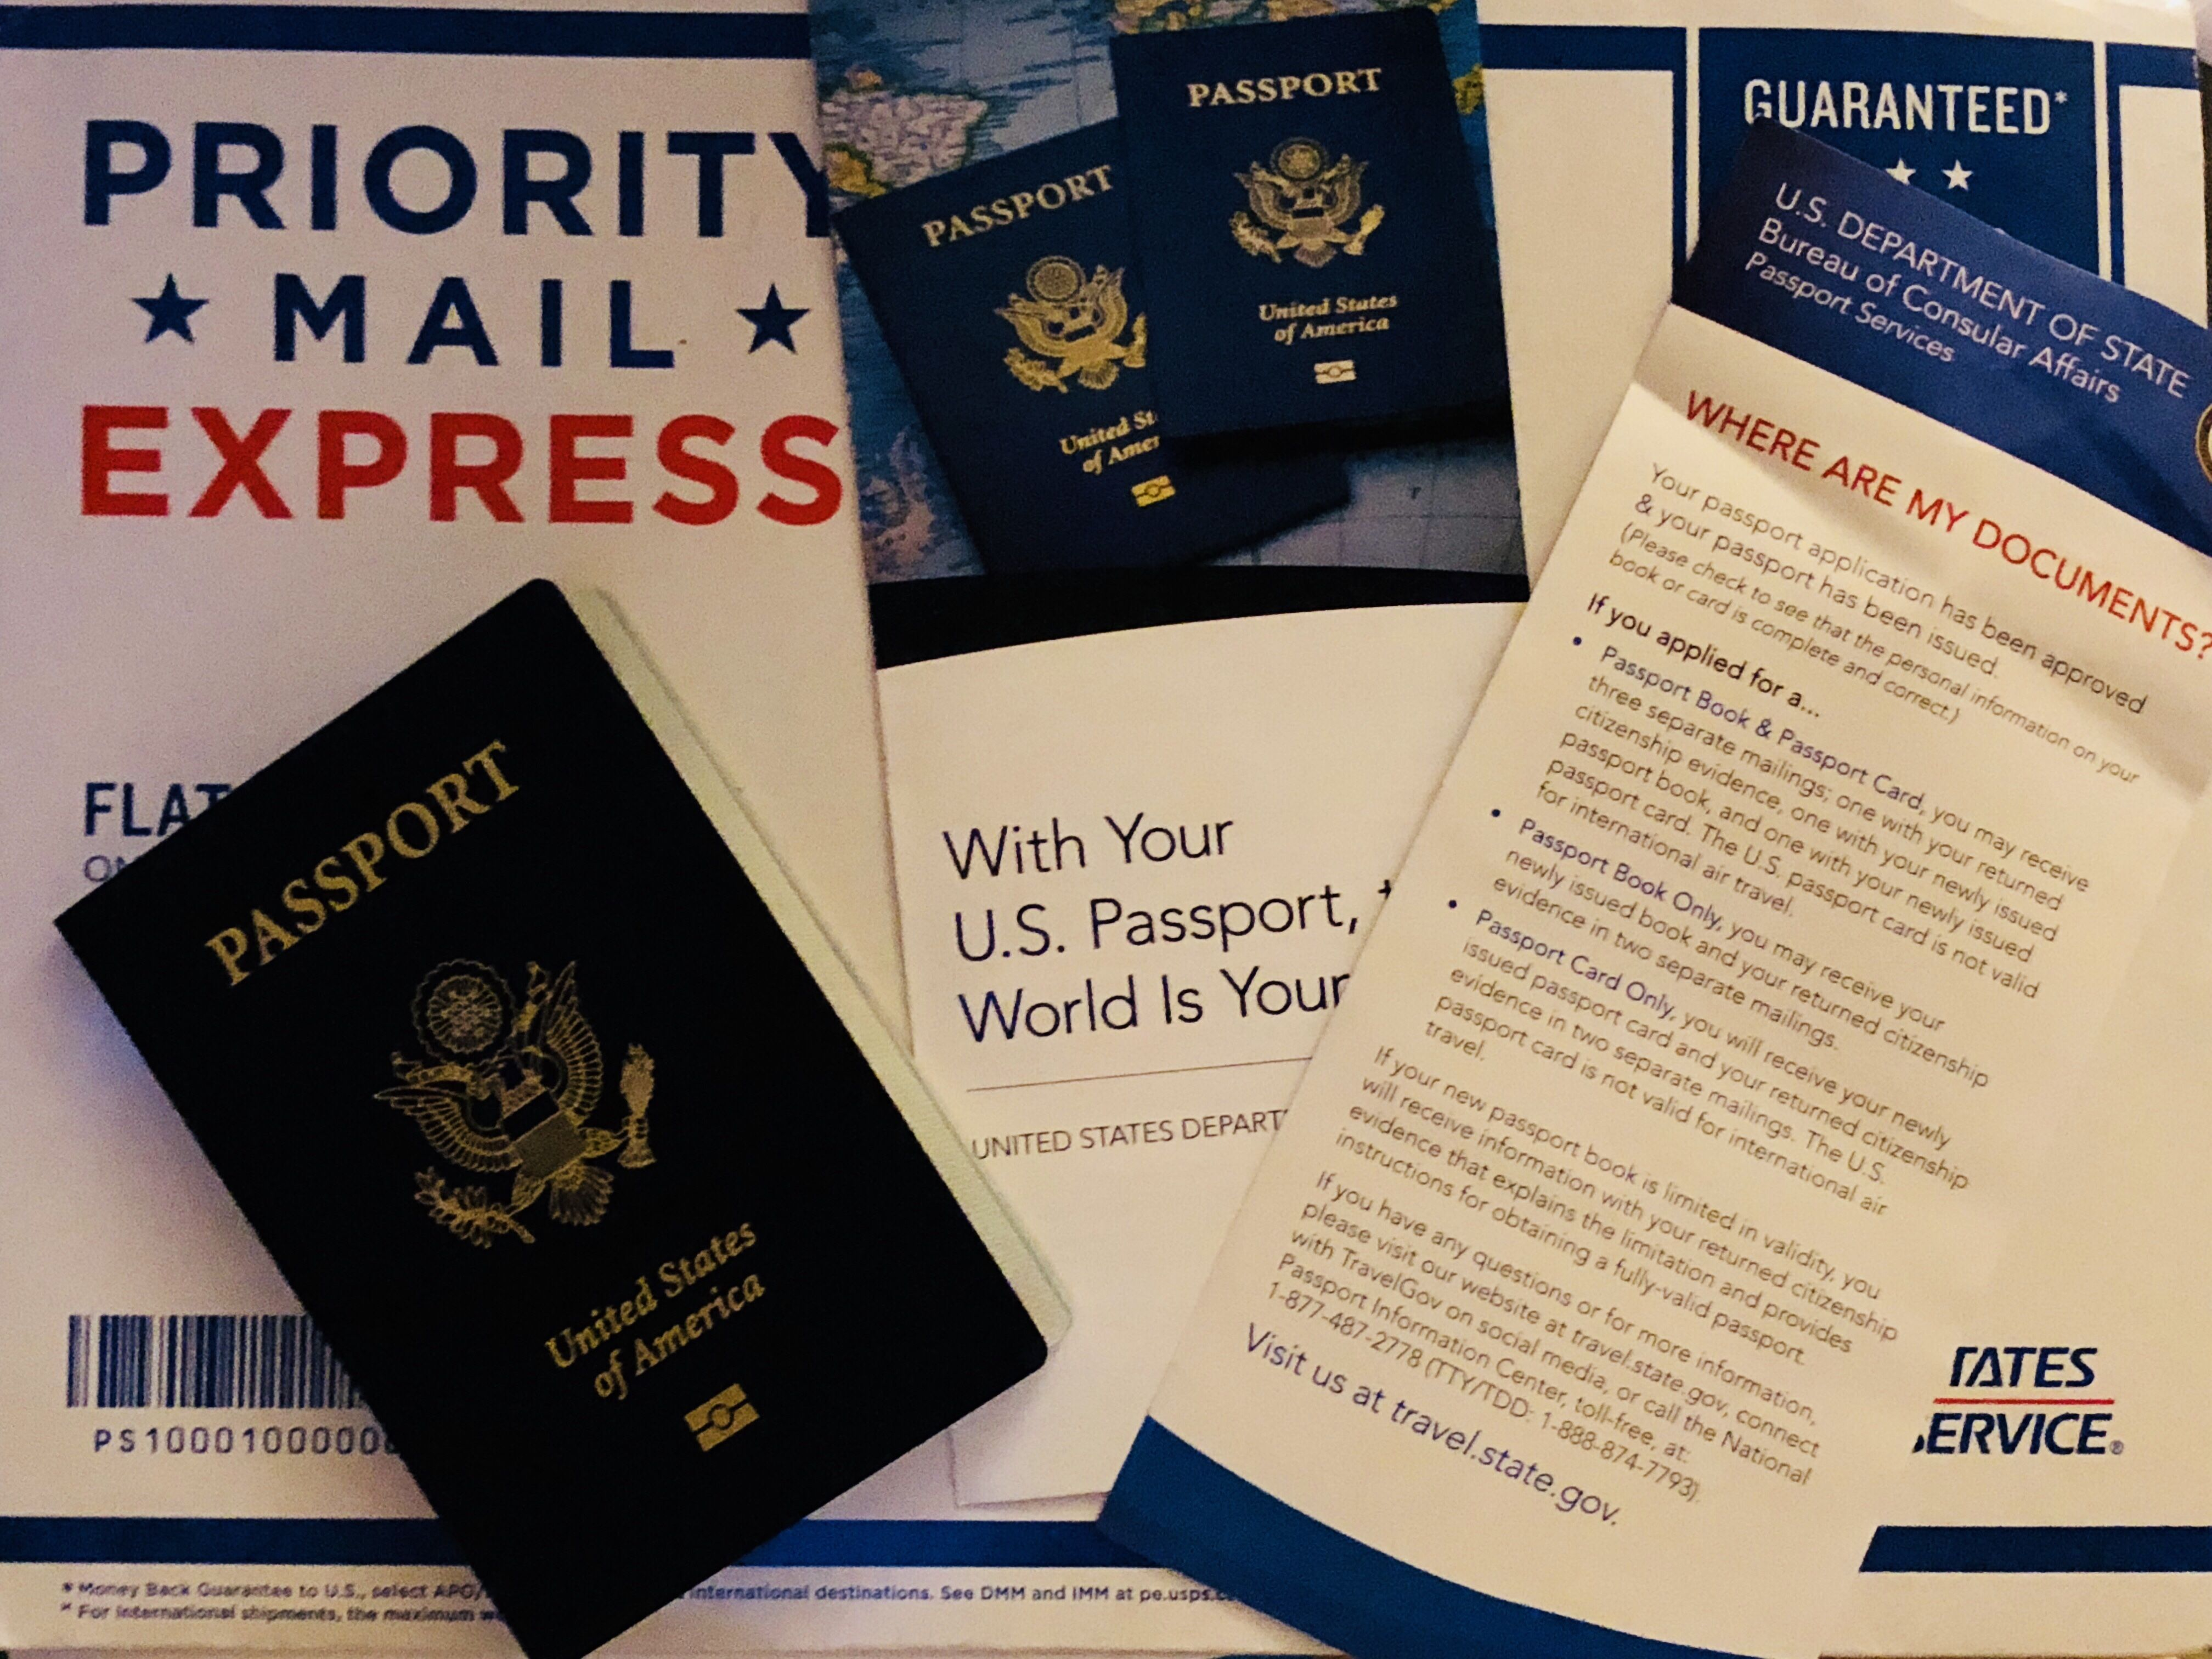 Home Visa online, Passport services, Travel visa